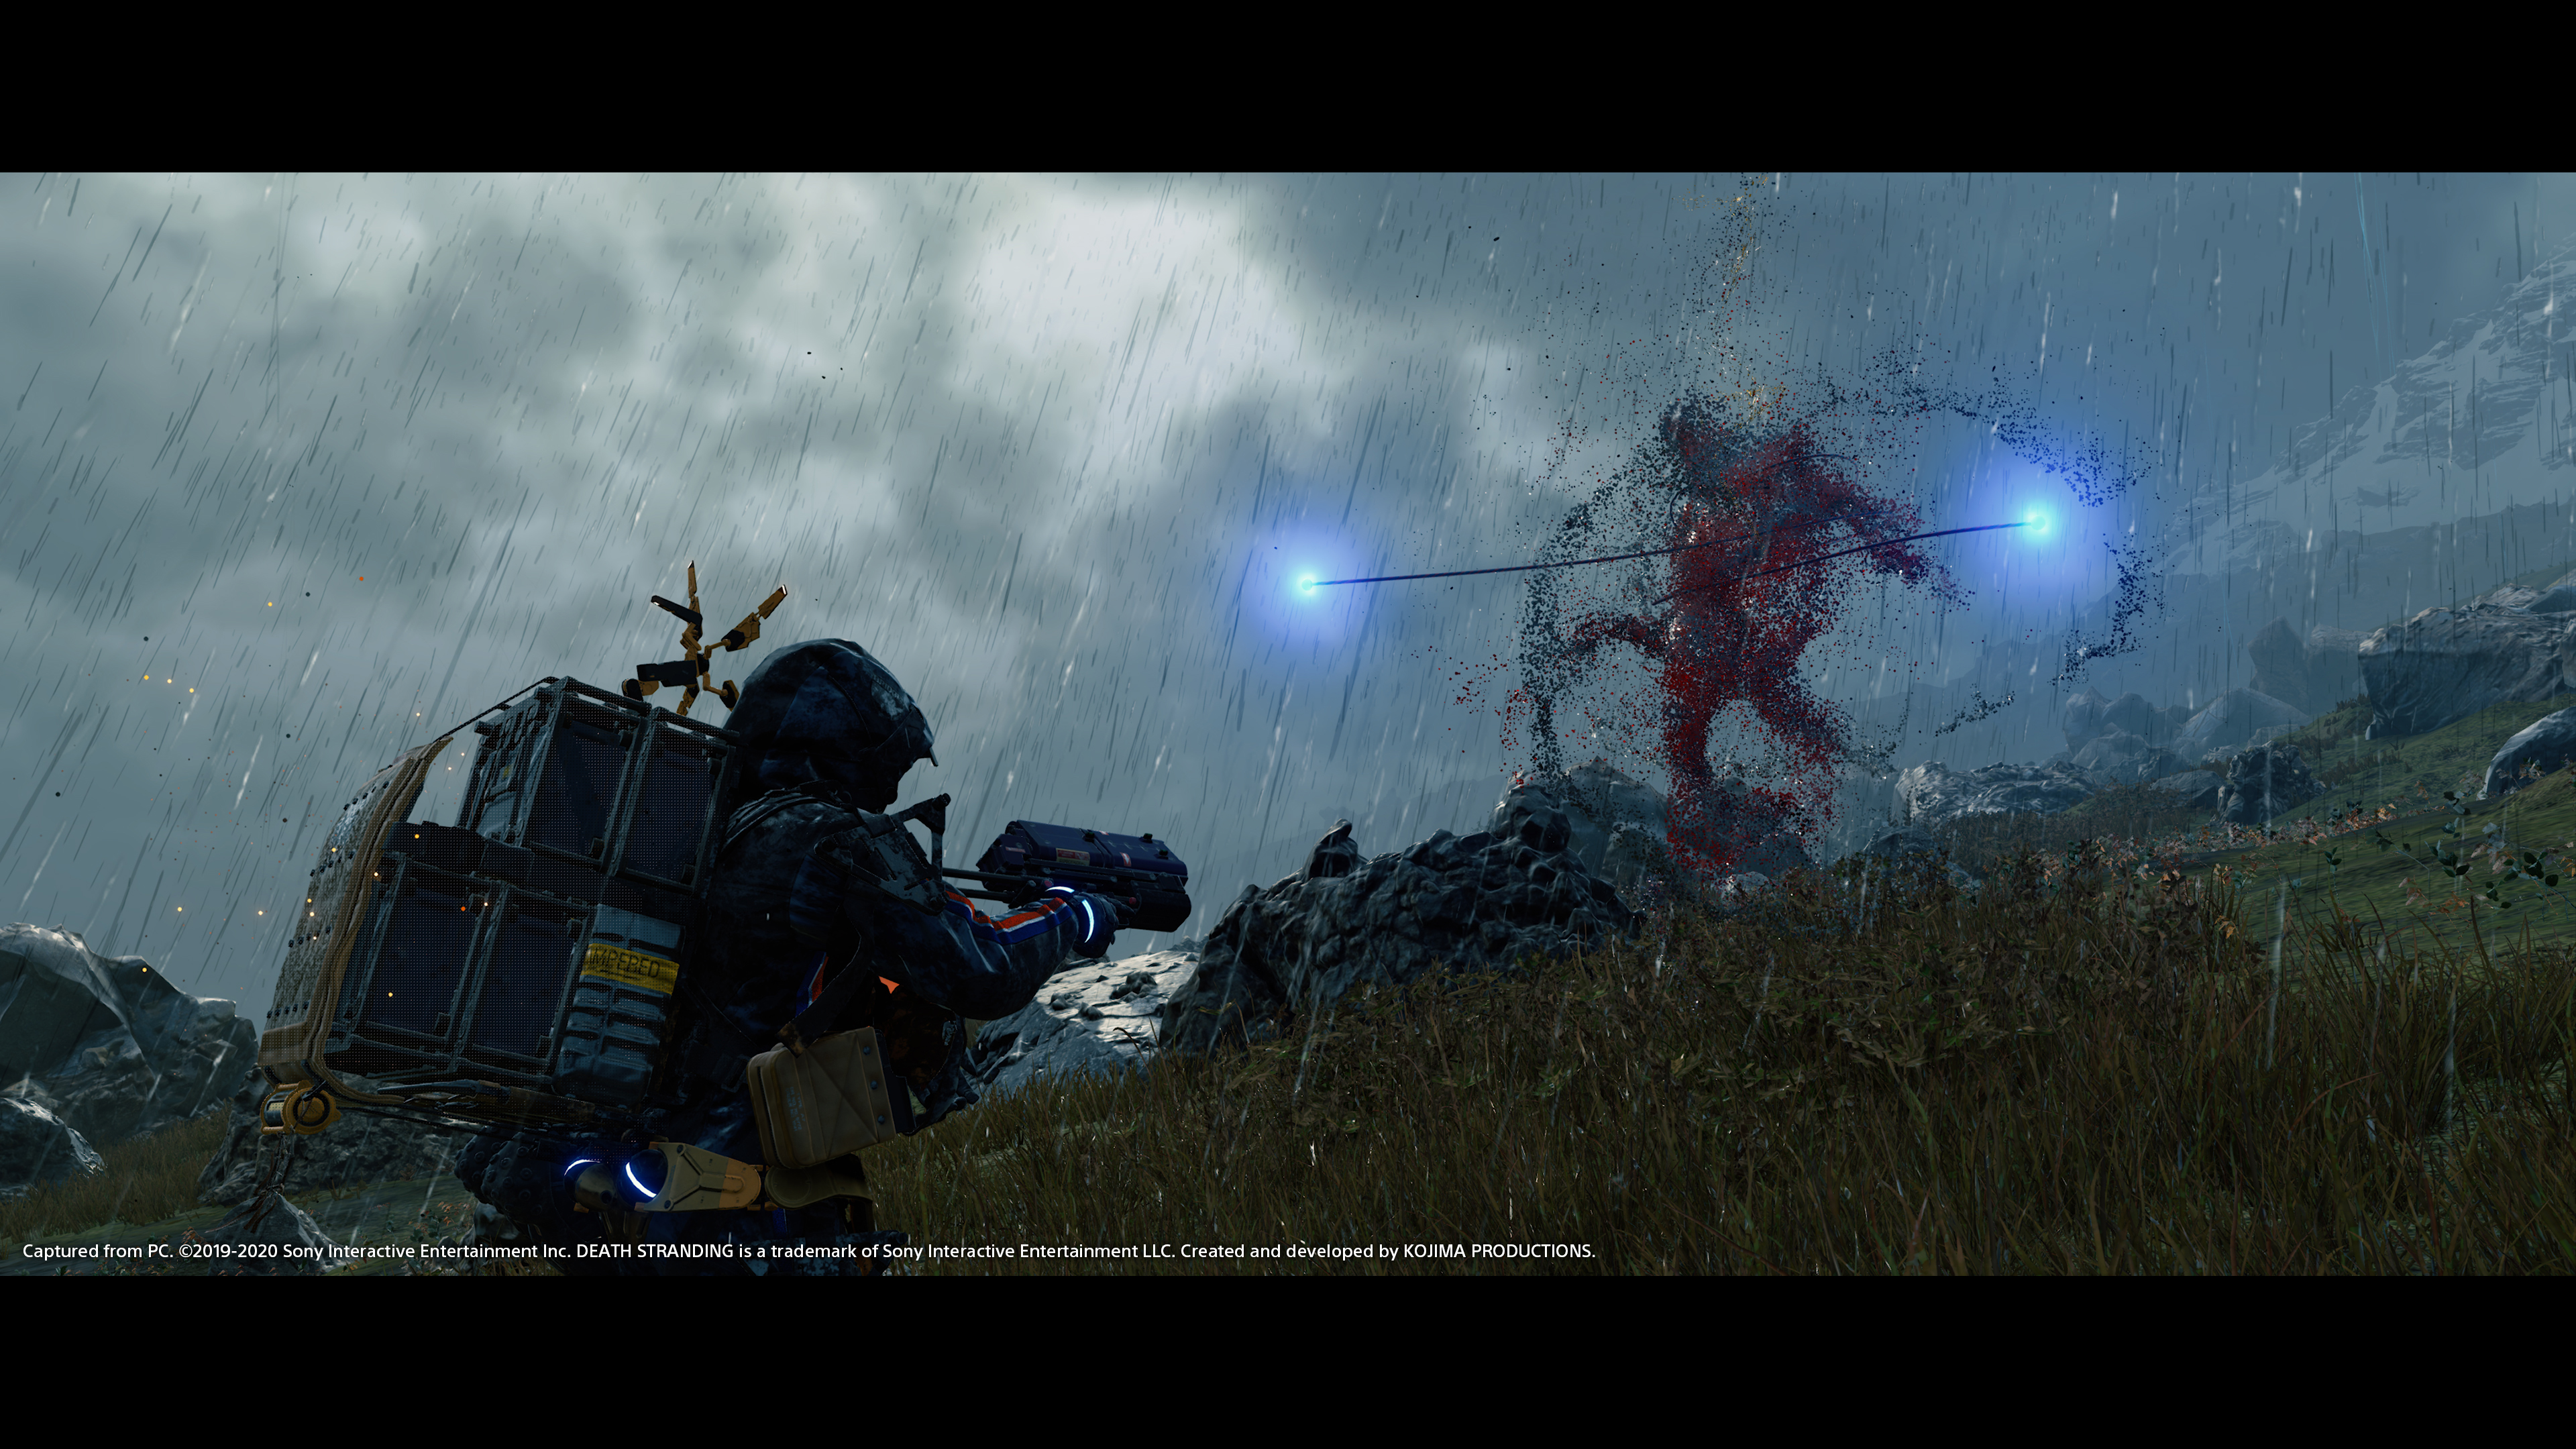 The sparse delivery-focused gameplay of<em>Death Stranding </em>has been divisive, but the game itself looks stunning on PC.